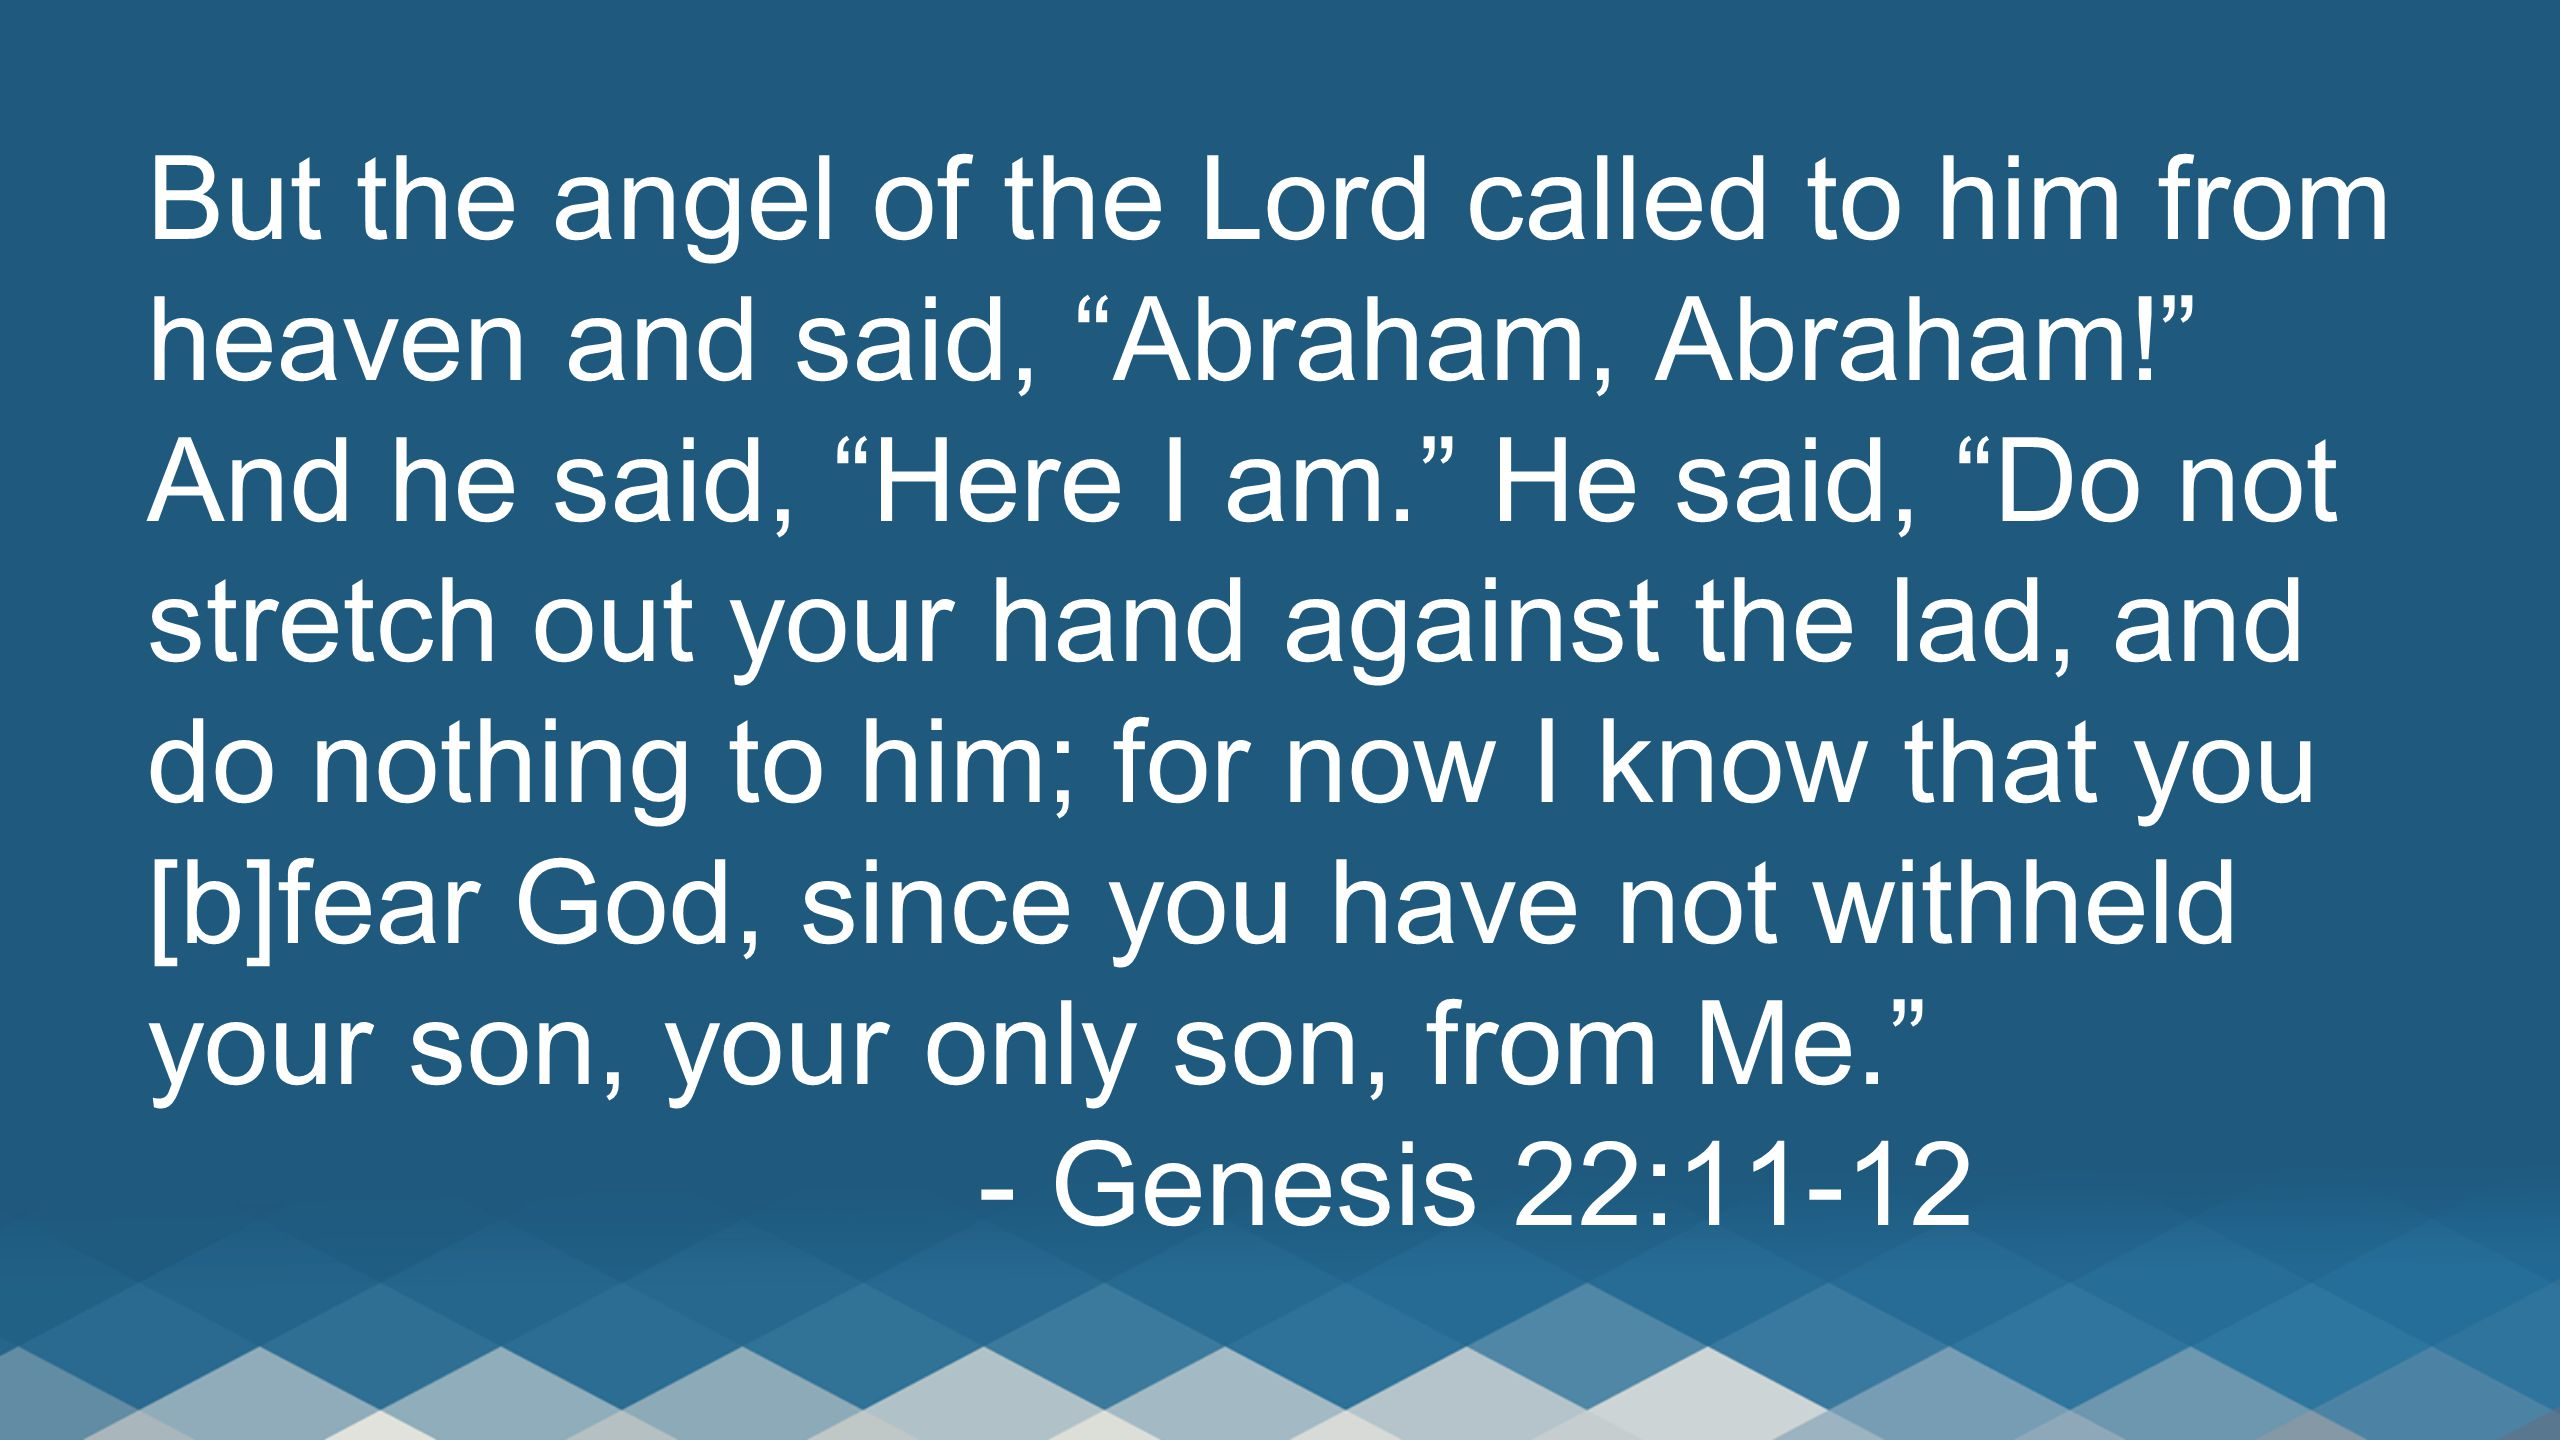 But the angel of the Lord called to him from heaven and said, Abraham, Abraham! And he said, Here I am. He said, Do not stretch out your hand against the lad, and do nothing to him; for now I know that you [b]fear God, since you have not withheld your son, your only son, from Me. - Genesis 22:11-12